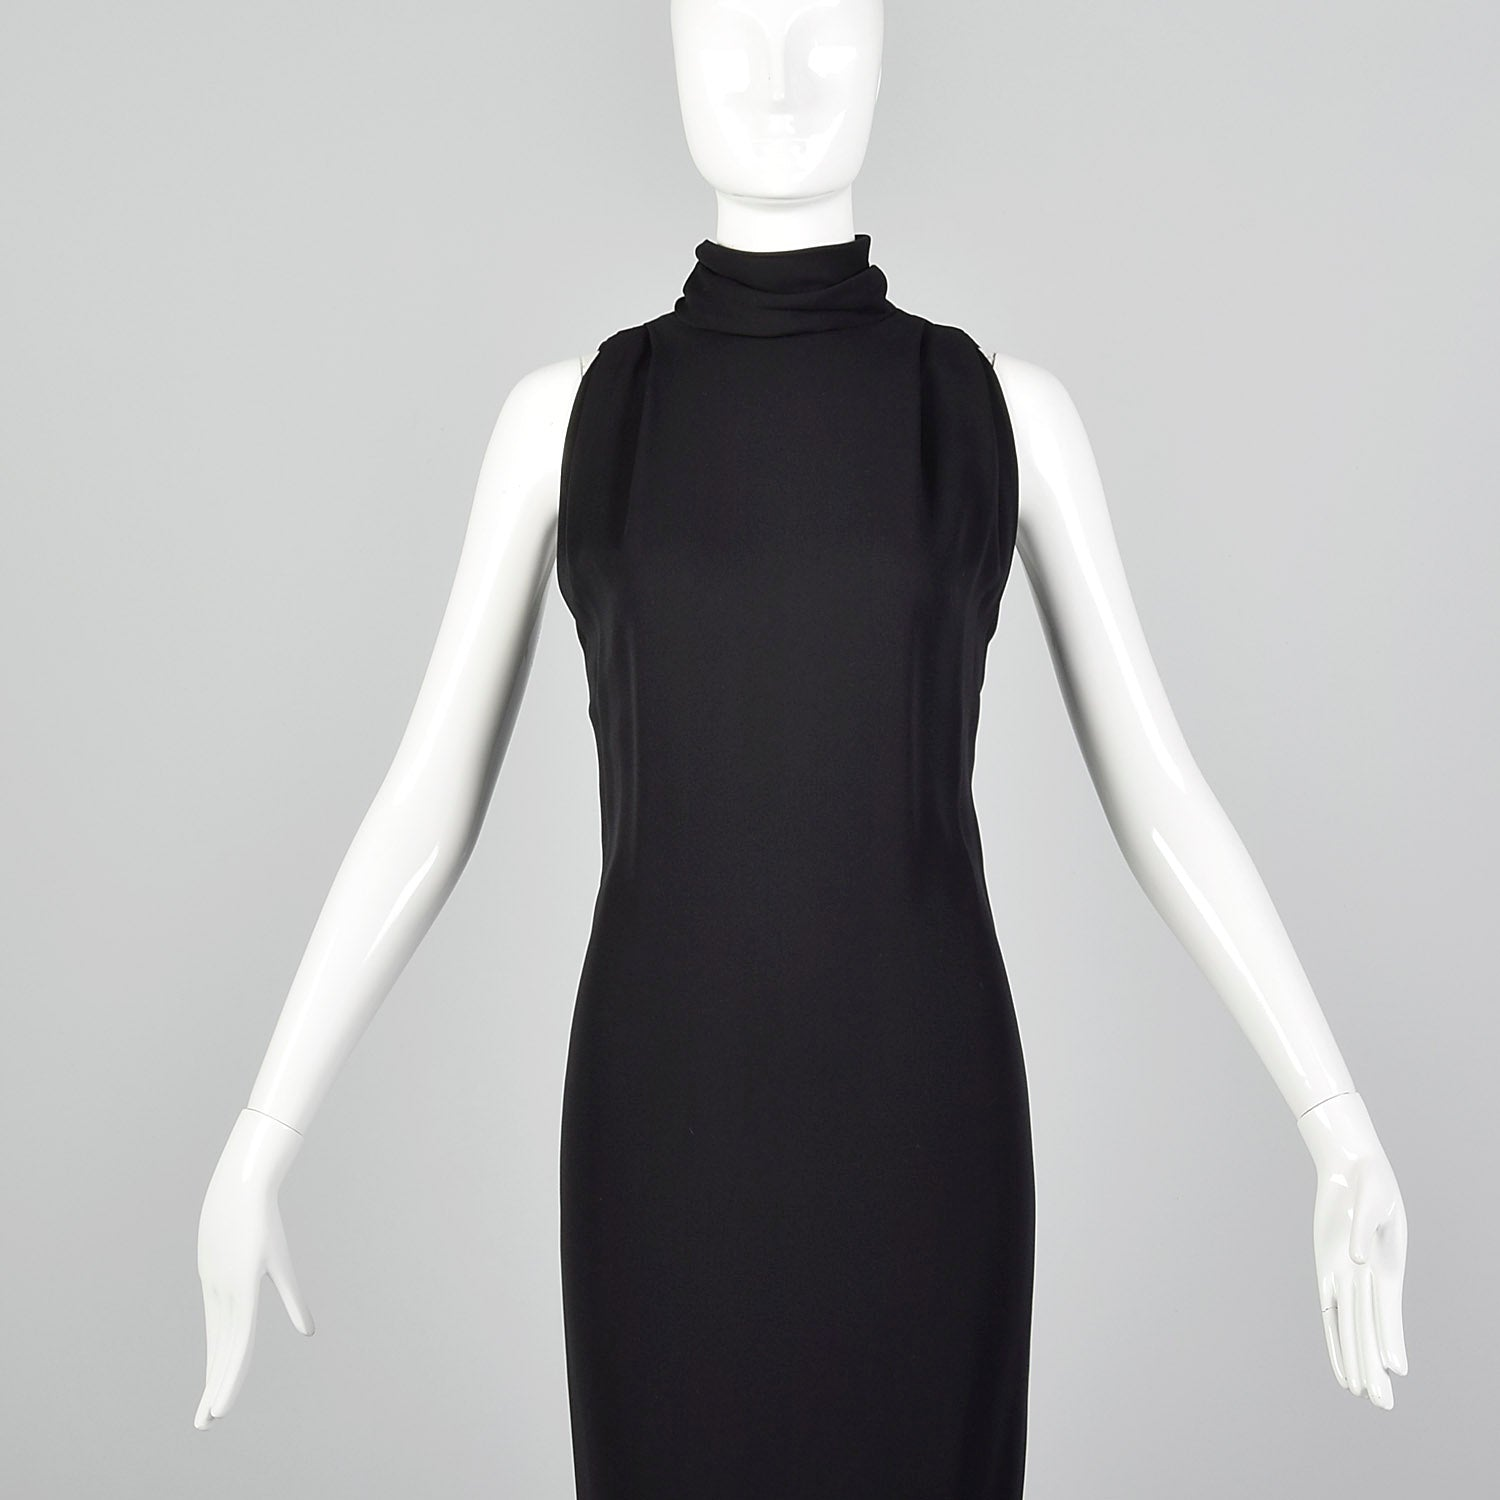 Small Galanos Late 1970s Minimalist Black Pencil Dress